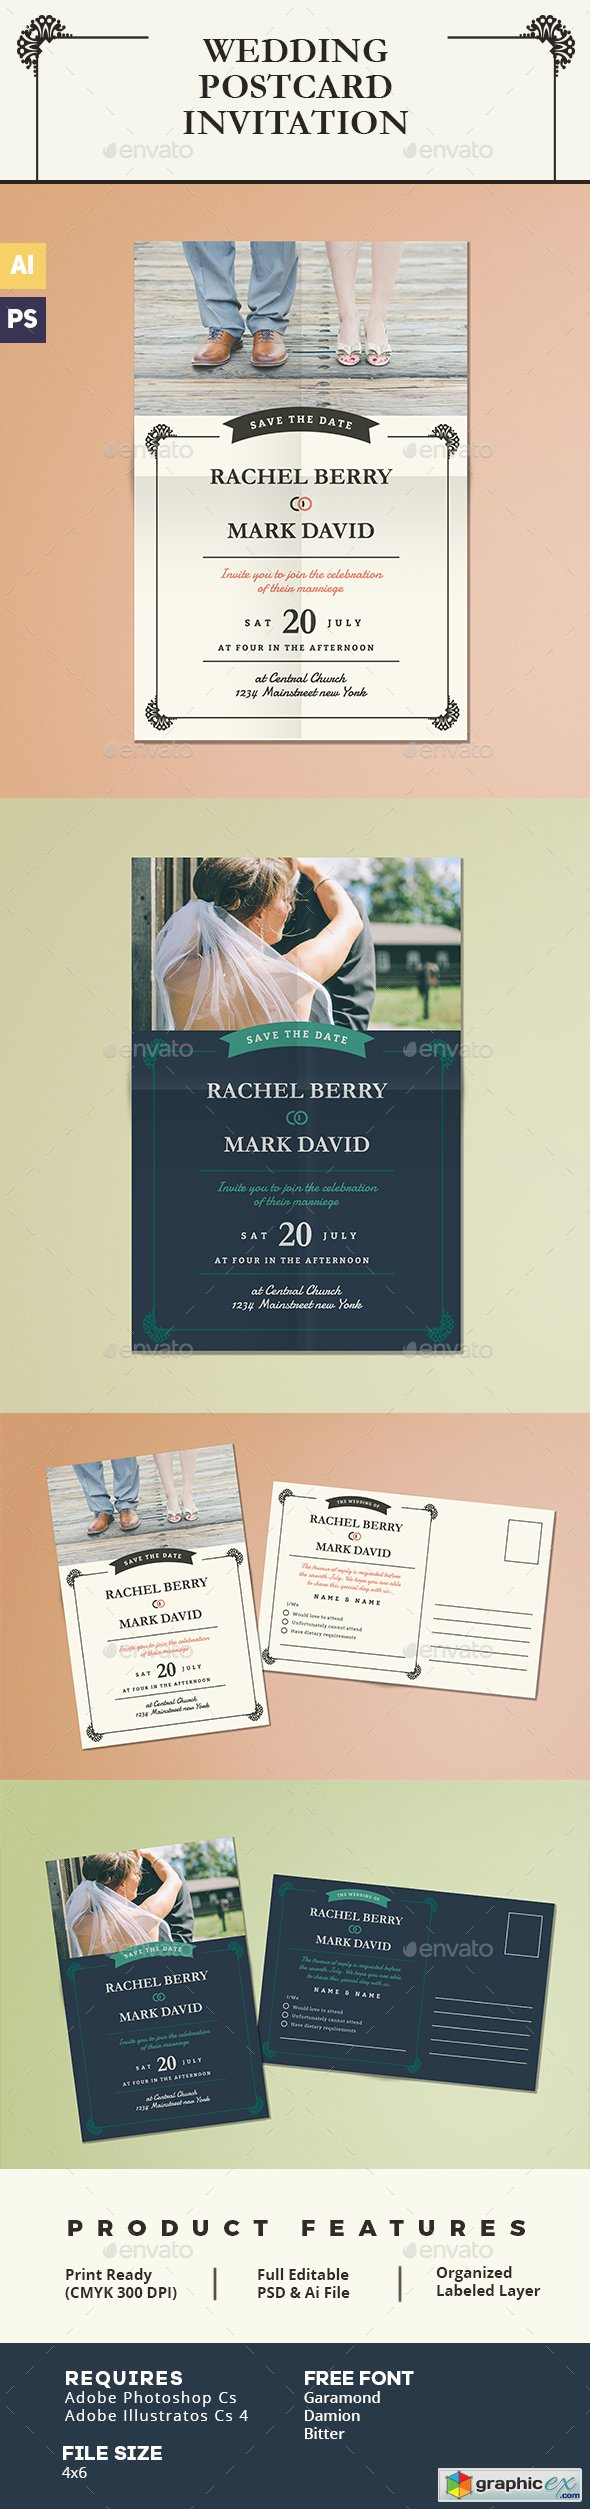 Elegant Wedding Postcard Invitation